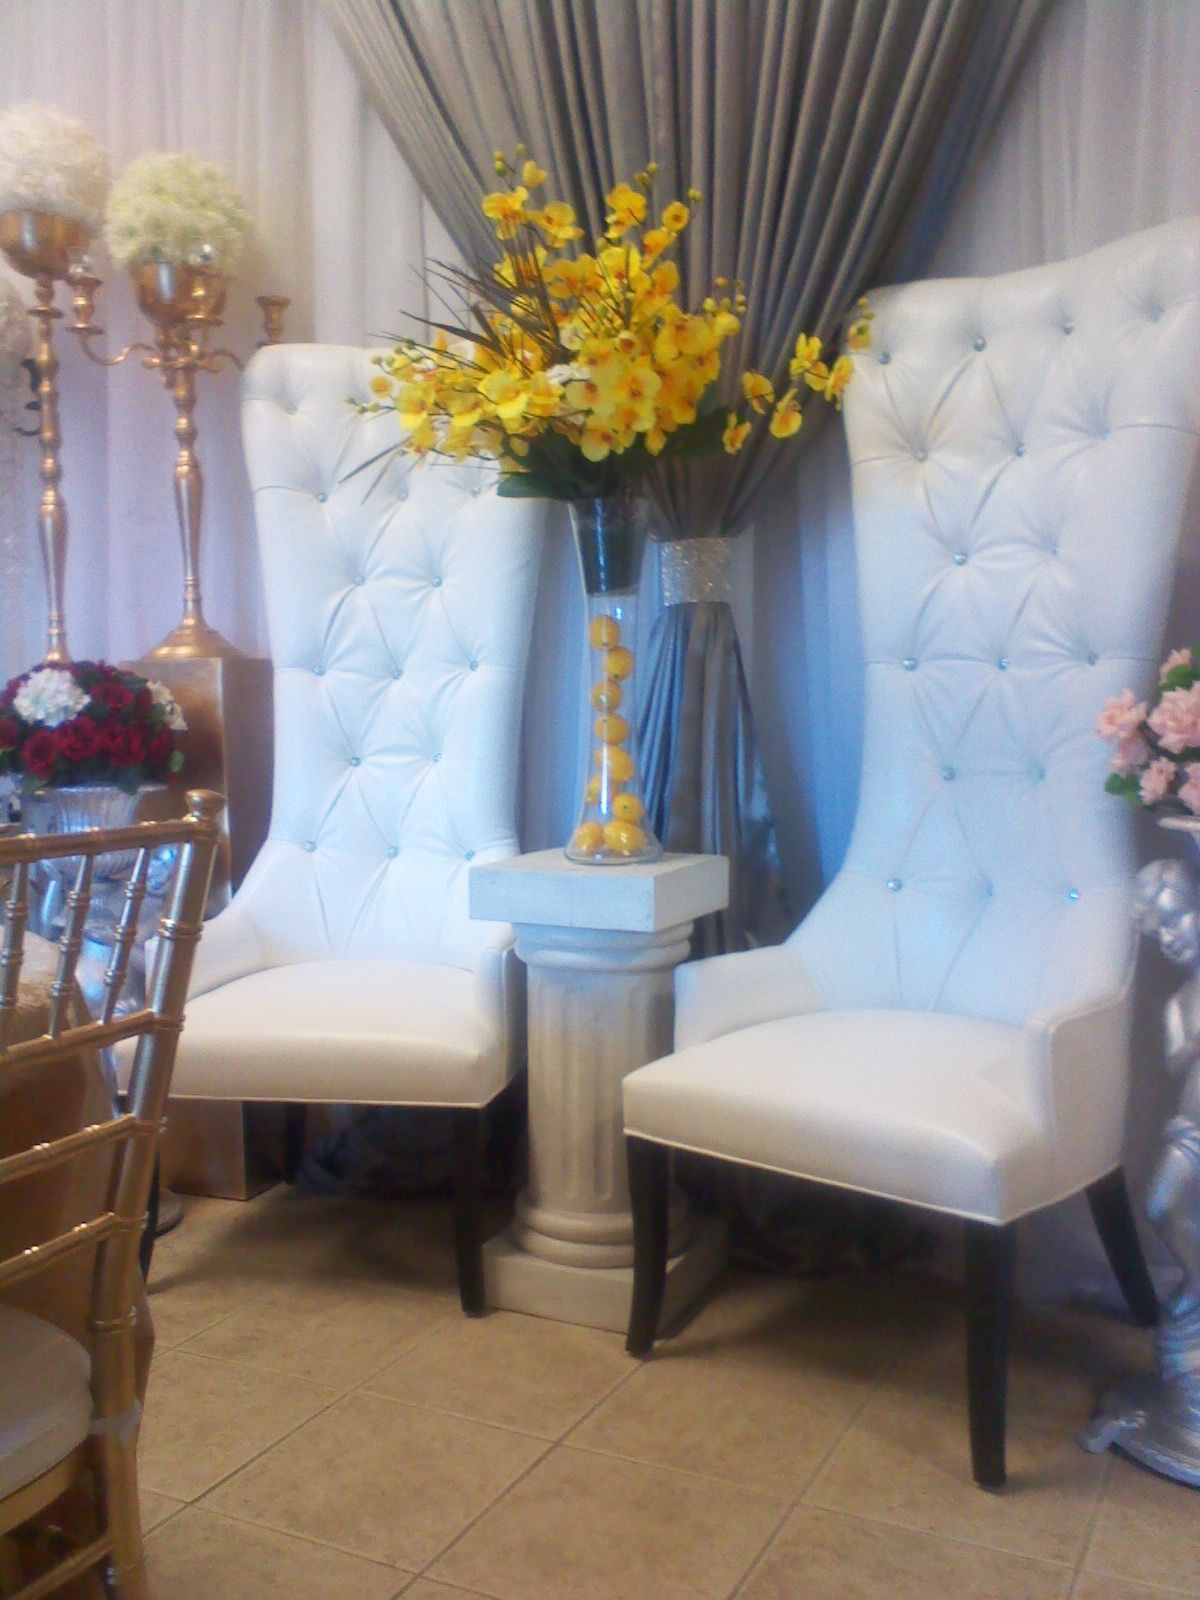 Rent Wedding Tables And Chairs Jenny Lind High Chair White King Queen Rentals Toronto Gta The Ultimate